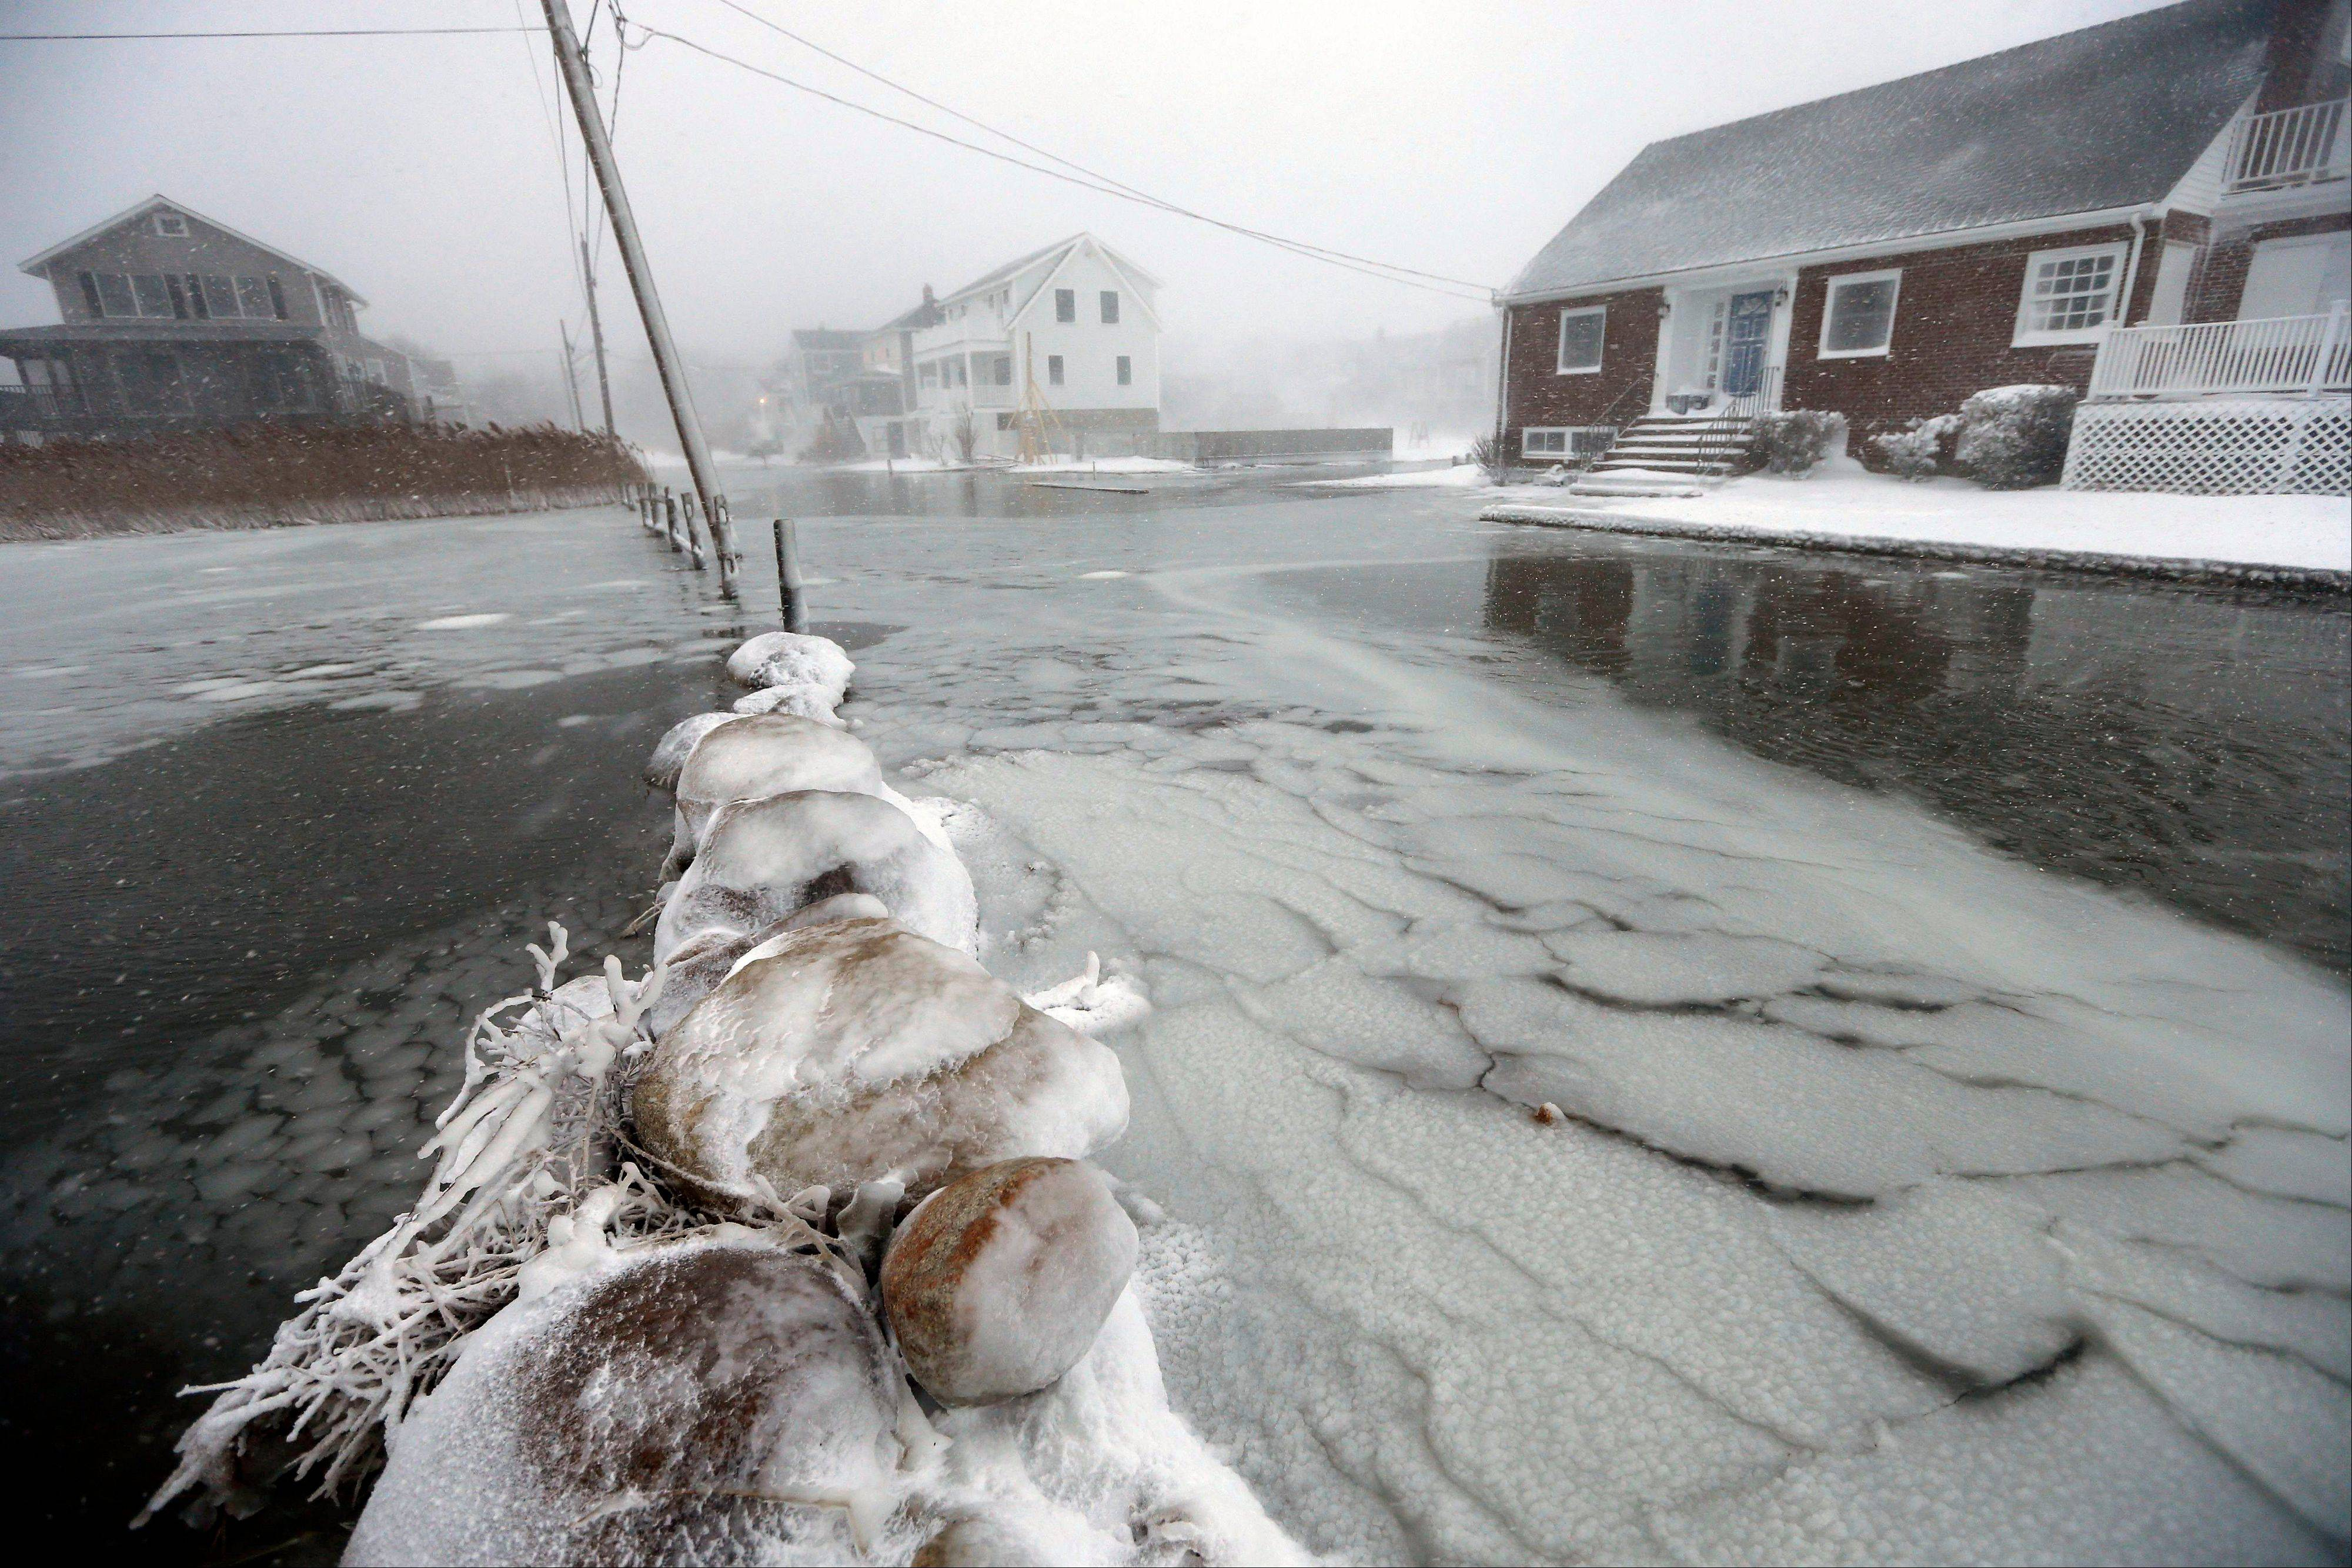 Houses line a flooded street along the shore in Scituate, Mass., Friday, Jan. 3, 2014. A blustering winter storm that dropped nearly 2 feet of snow just north of Boston, shut down major highways in New York and Pennsylvania and forced U.S. airlines to cancel thousands of flights nationwide menaced the Northeast on Friday with howling winds and frigid temperatures.